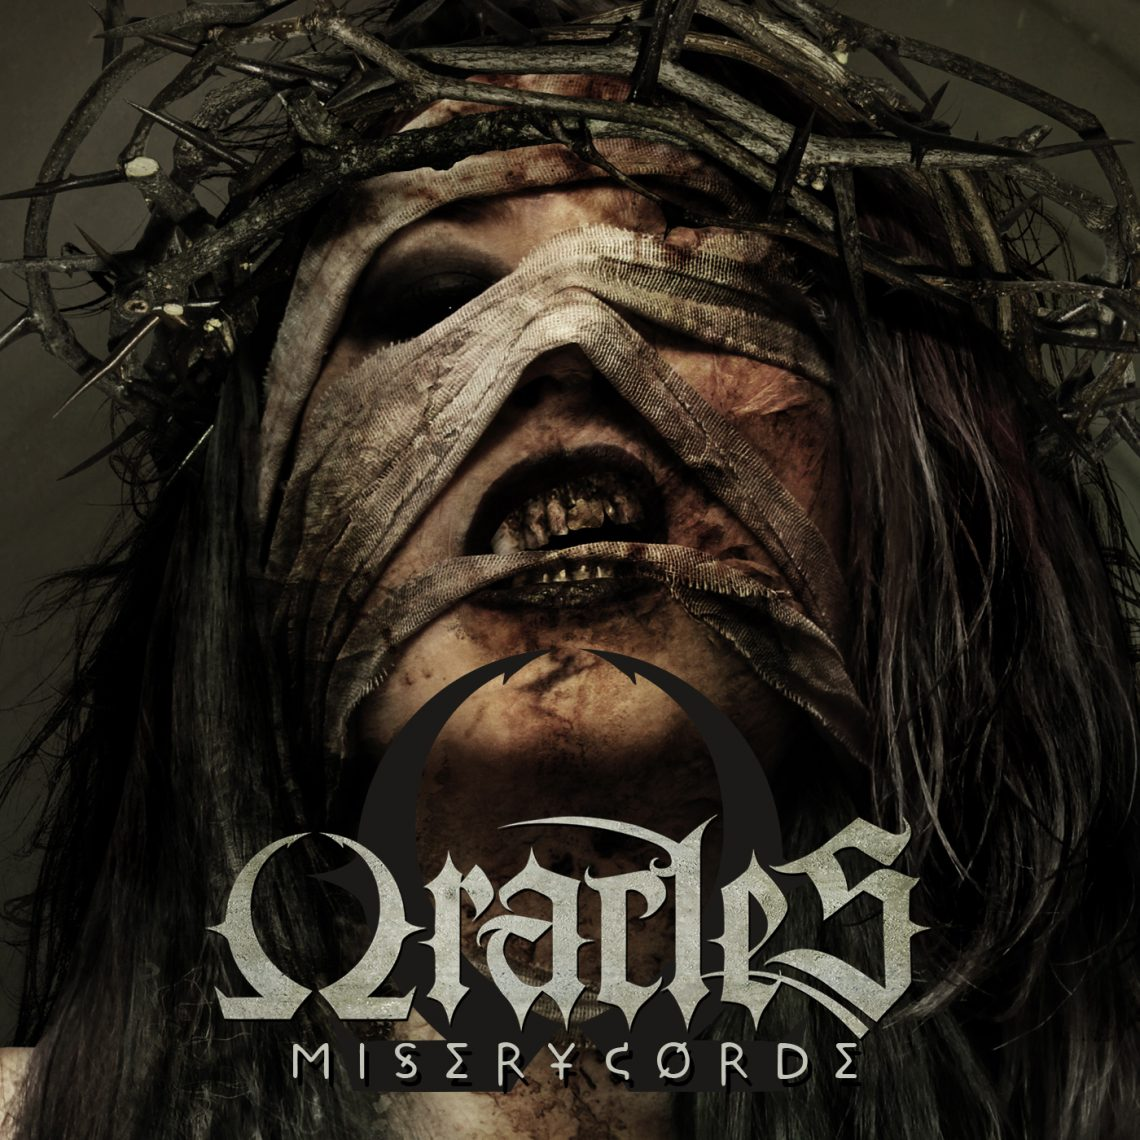 Oracles – Miserycorde CD Review